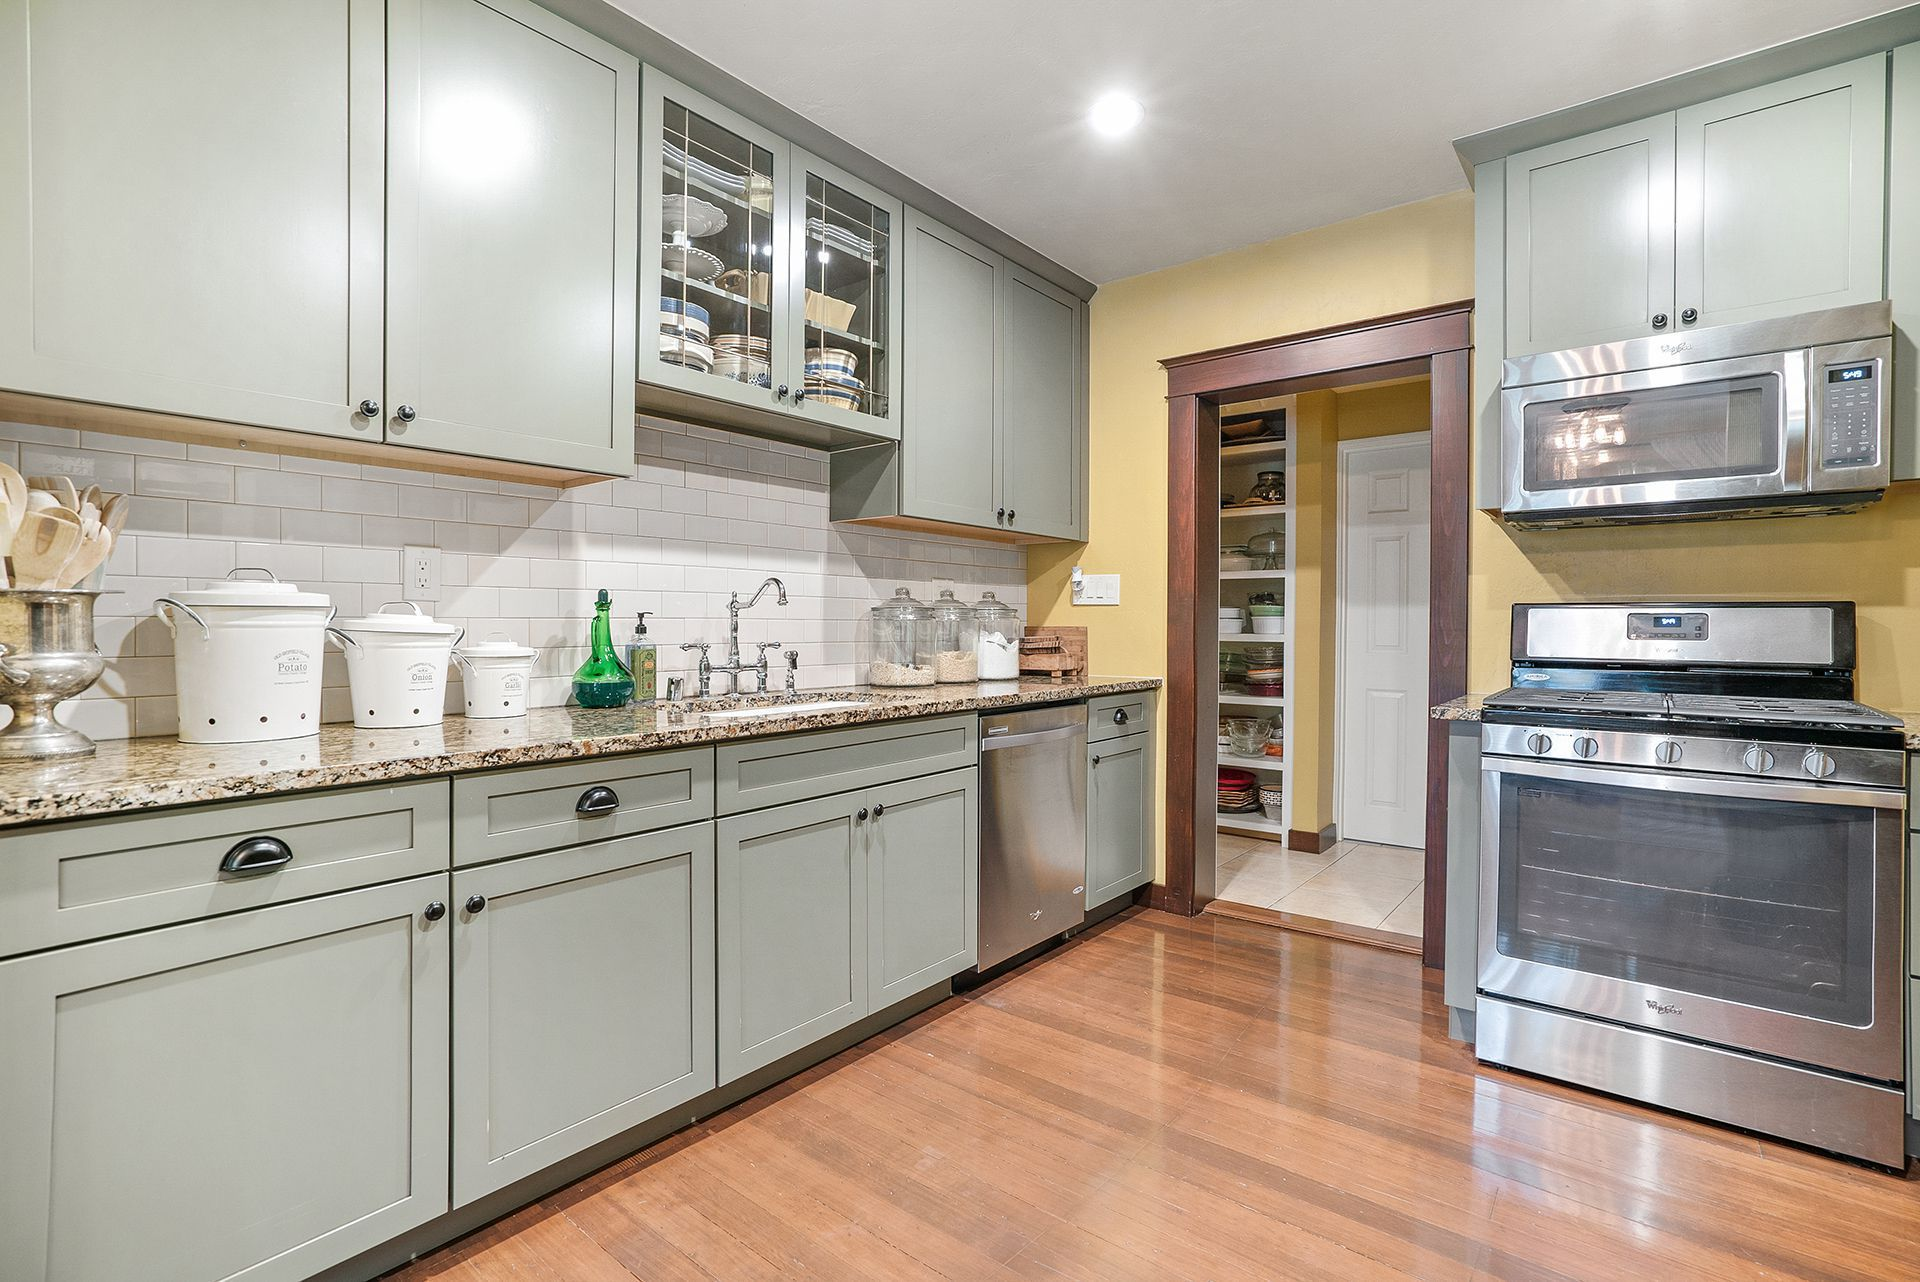 Completely Remodeled Kitchen With Re Leveled Flooring And Copper Plumbing View Into The Hallway Wherein If You Turn Right Ll Reach Large Walk In